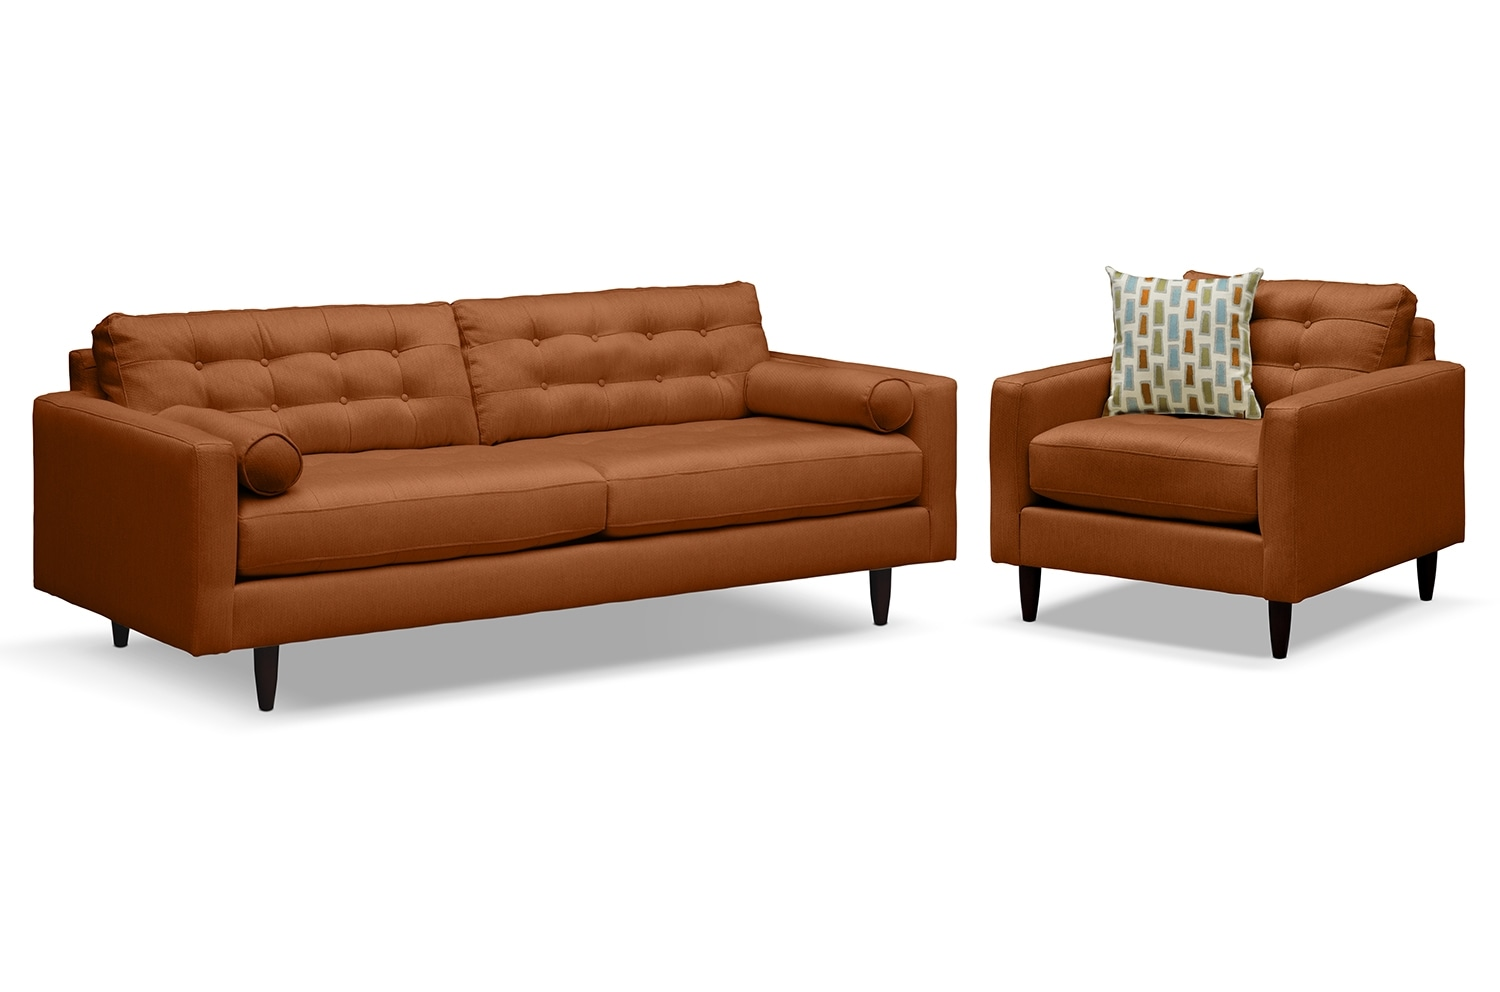 Avenue II Upholstery 2 Pc Living Room W Chair Value City Furniture